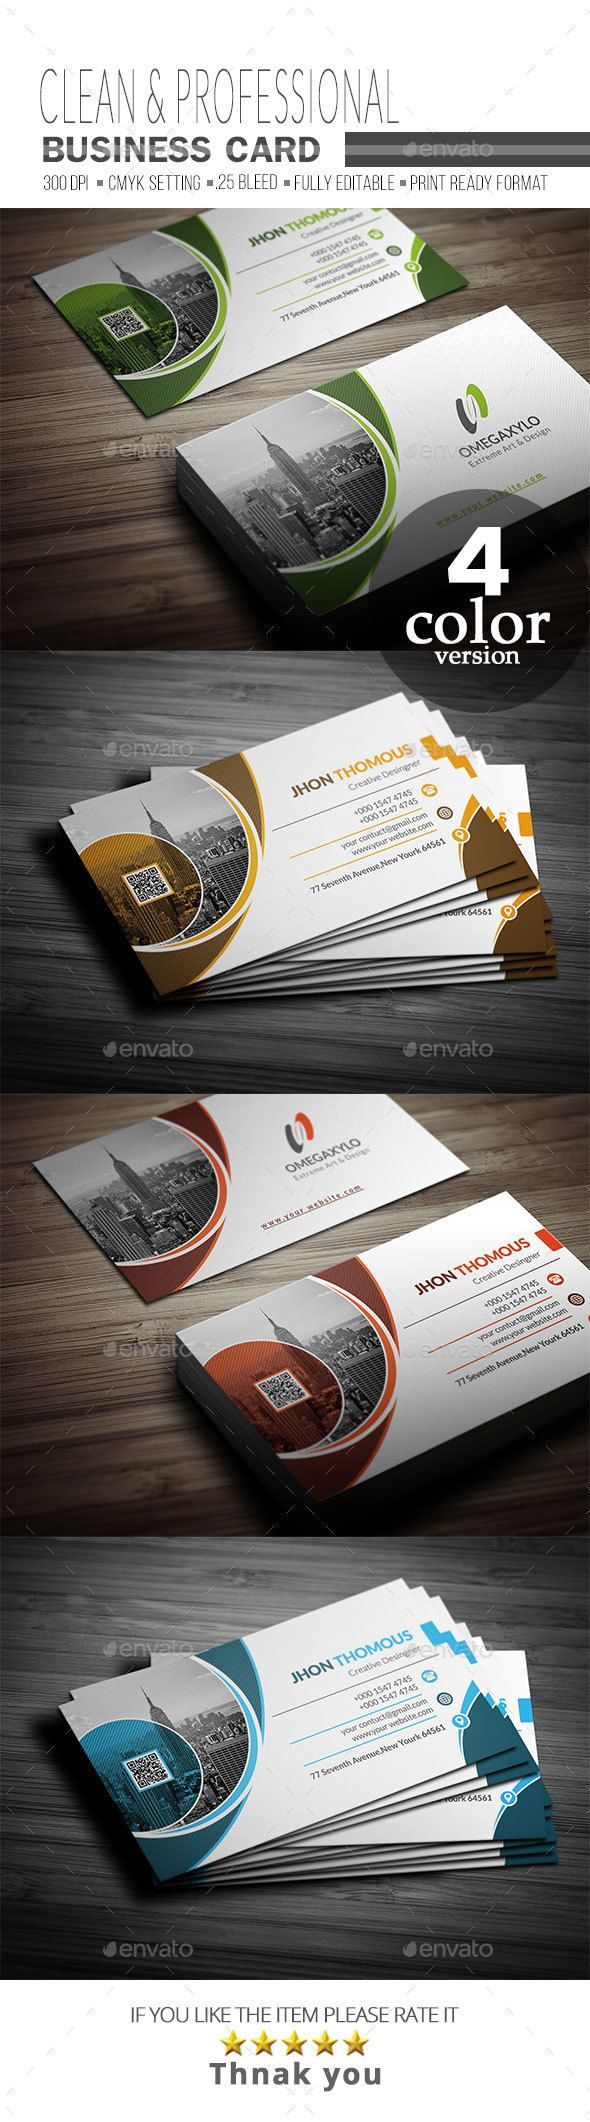 Business Card Download Business Card Free Business Cards Cheap Business Cards